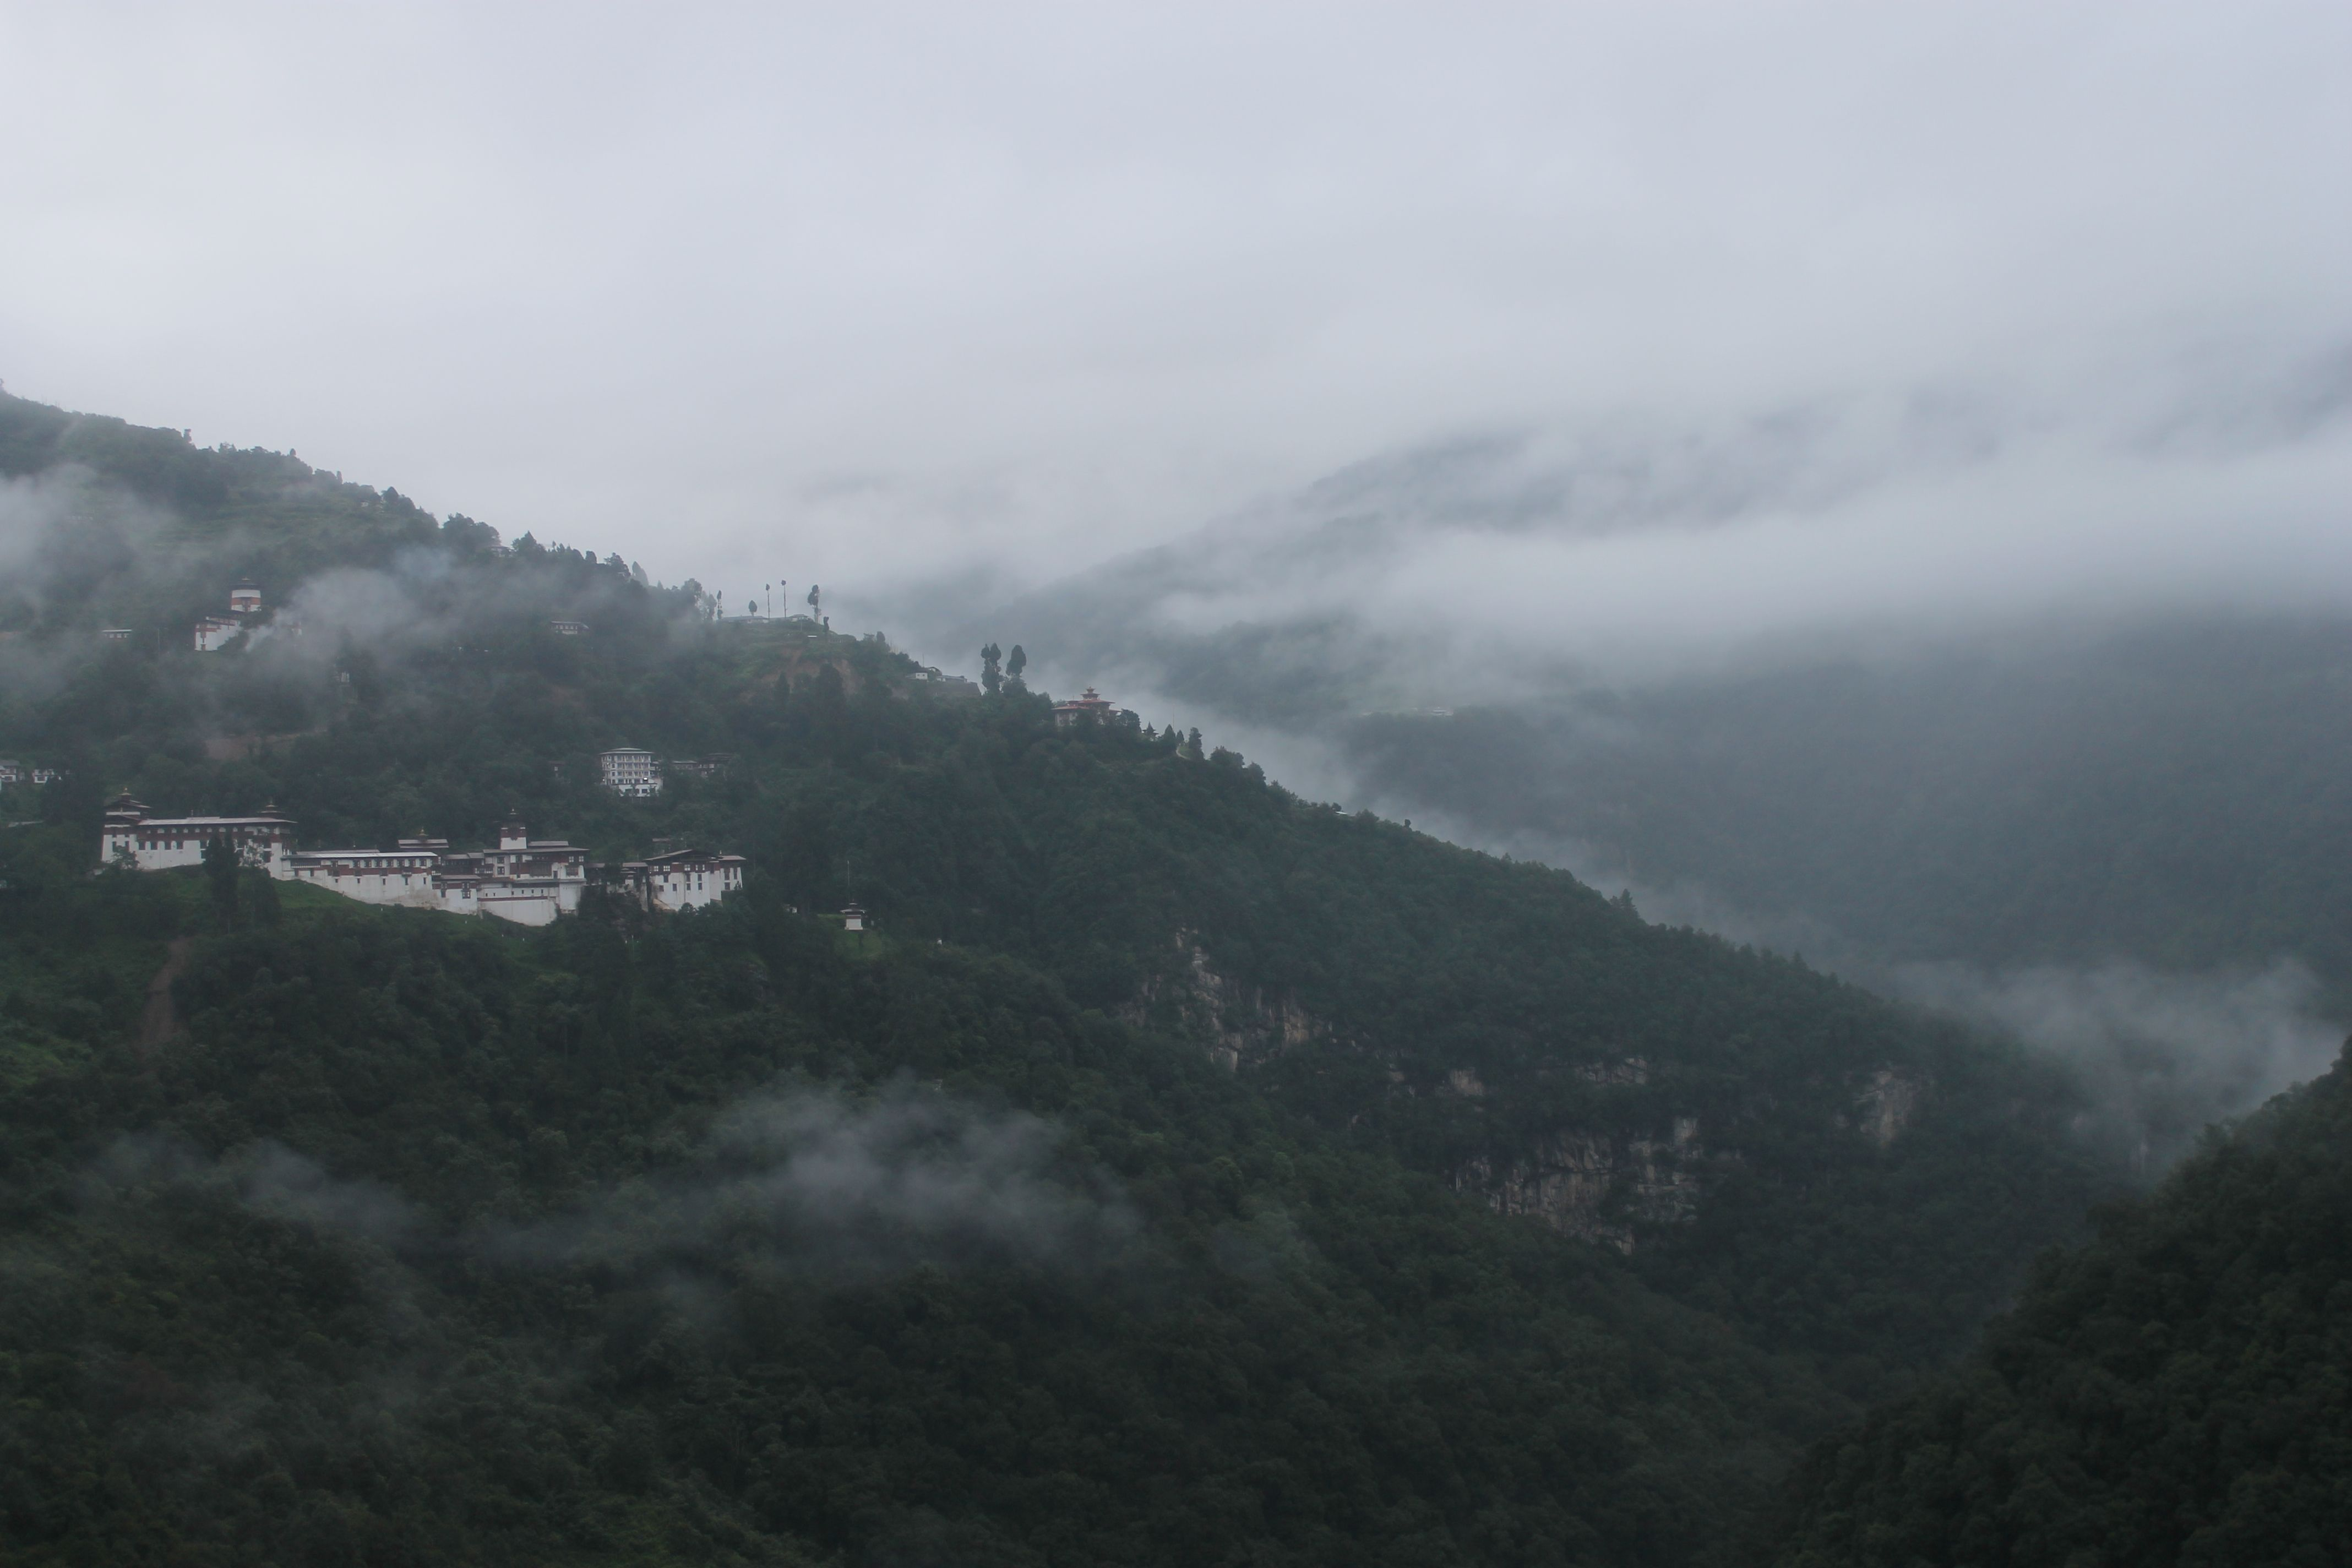 The Trongsa Dzong, or fortress, sits nestled among the trees in the early morning mist in the district of Trongsa. Image by Emma Johnson. Bhutan, 2019.